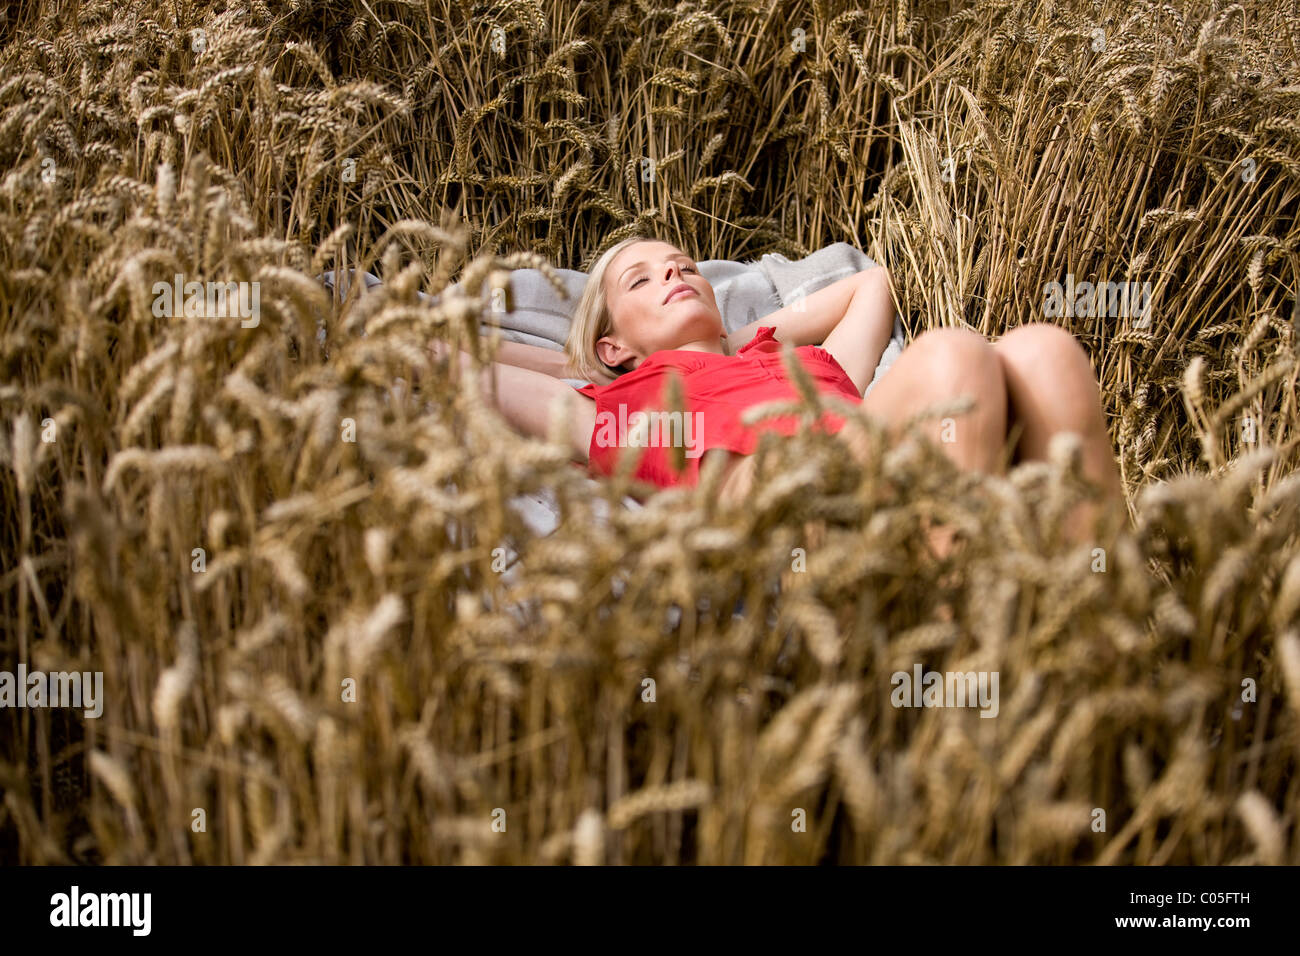 A woman lying in a wheatfield in summertime - Stock Image